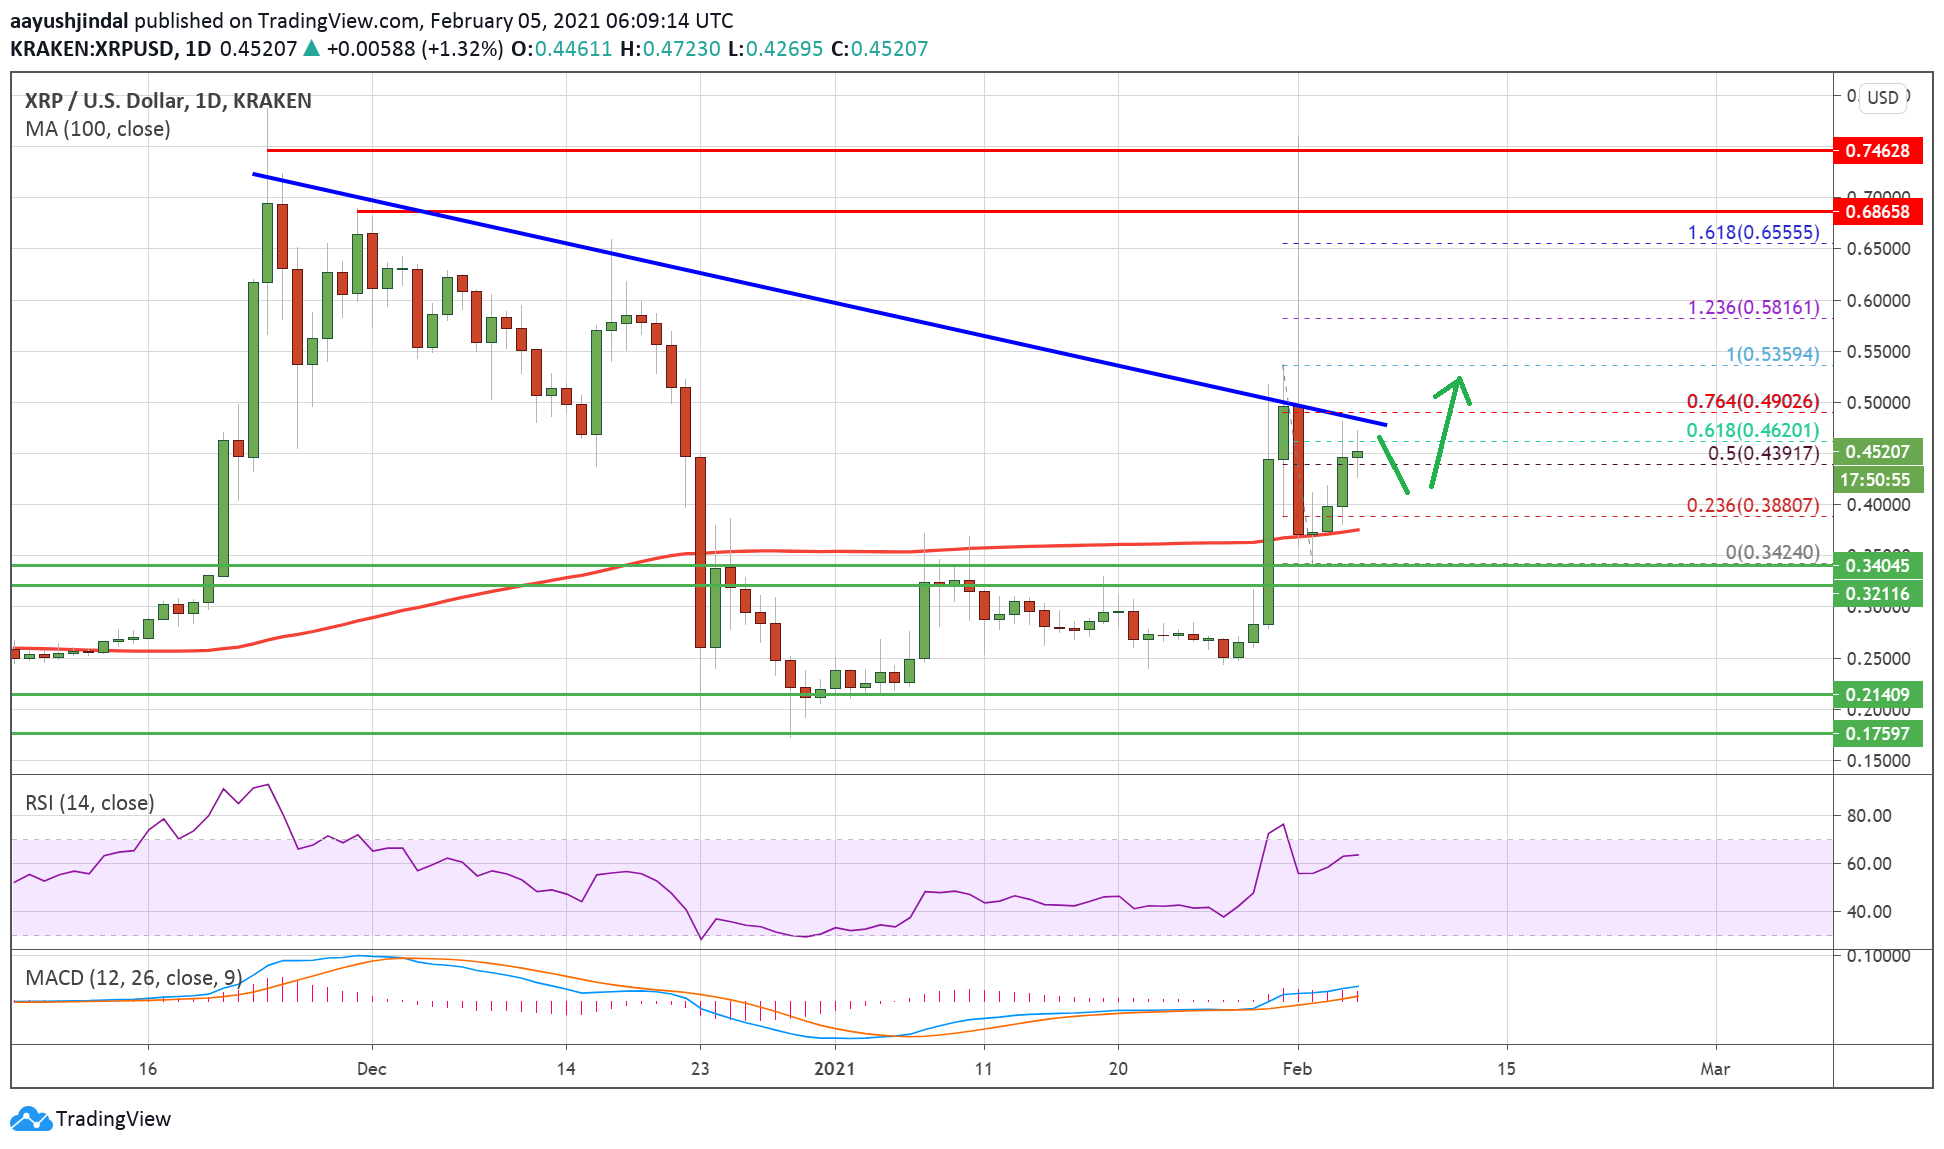 Charted: Ripple (XRP) Surges 15%, Why Bulls In Control Above $0.44